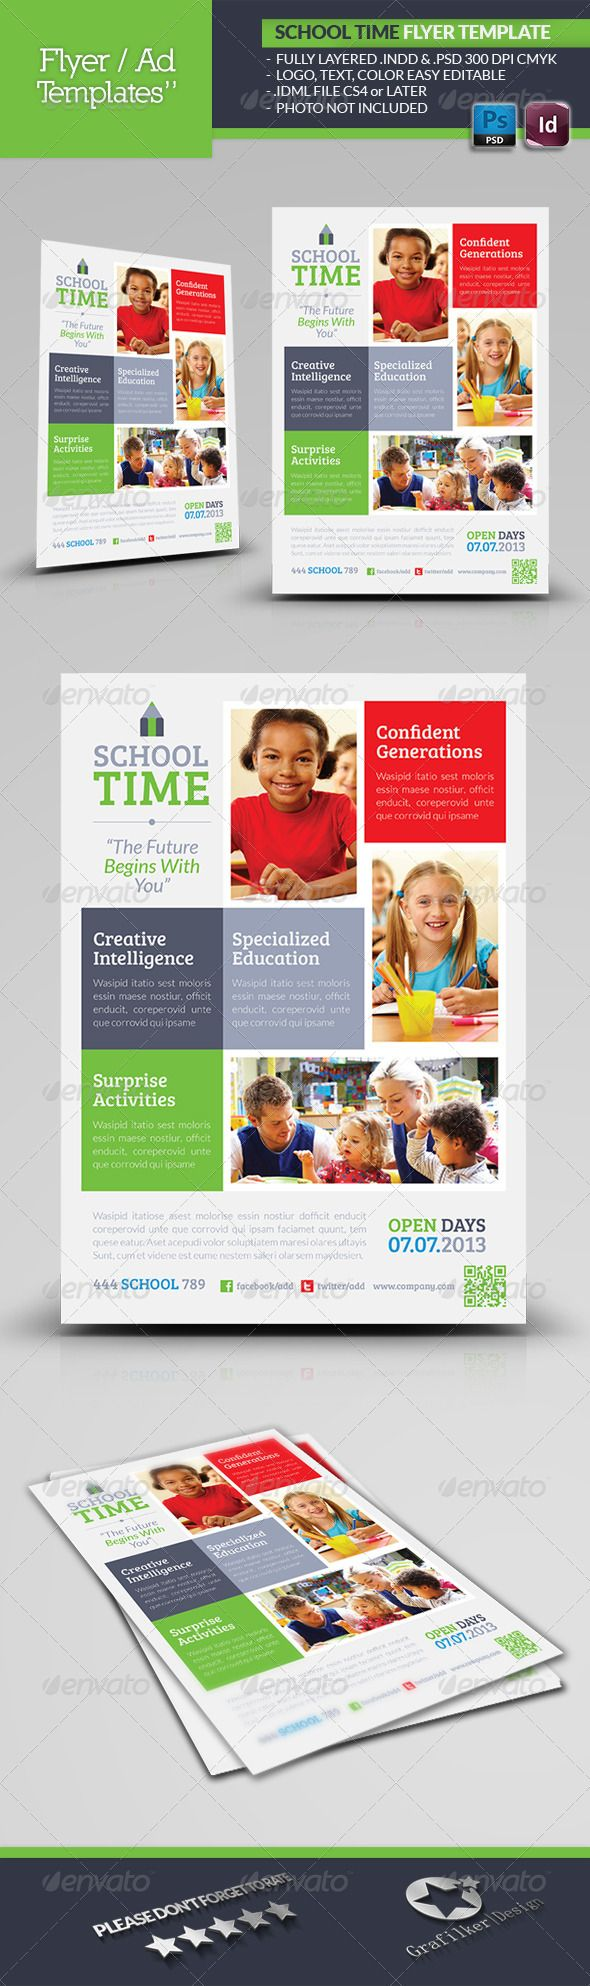 59 best ideas about school marketing acrylics 59 best ideas about school marketing acrylics marketing and promotion